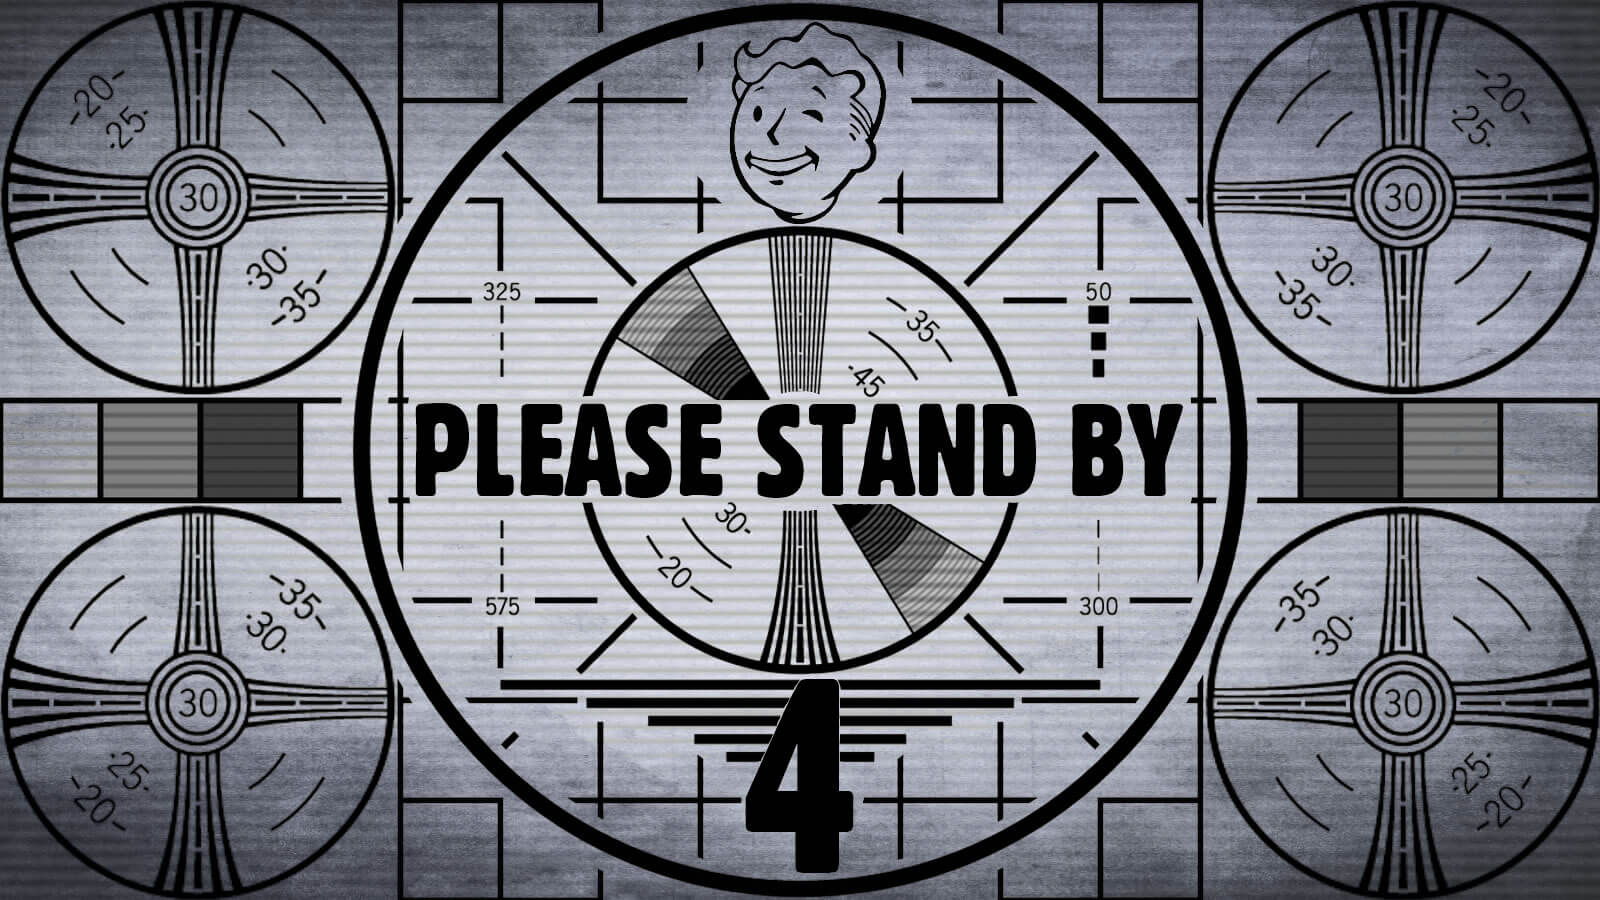 Bethesda trolled over 2 million Fallout fans with a 24-hour